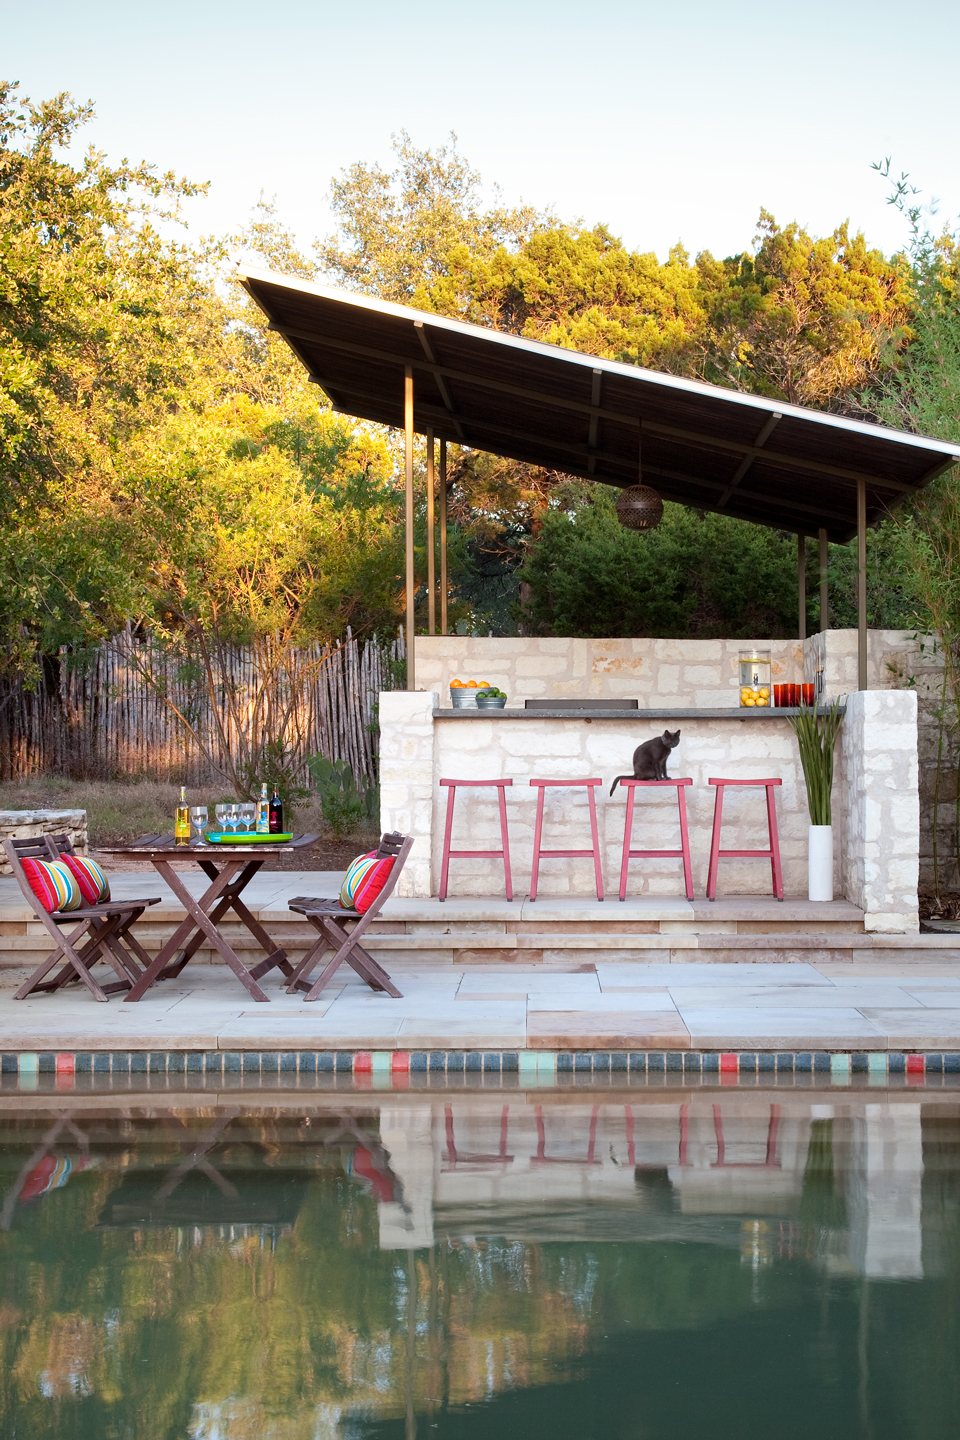 An after image of a midcentury pool with bar and stools